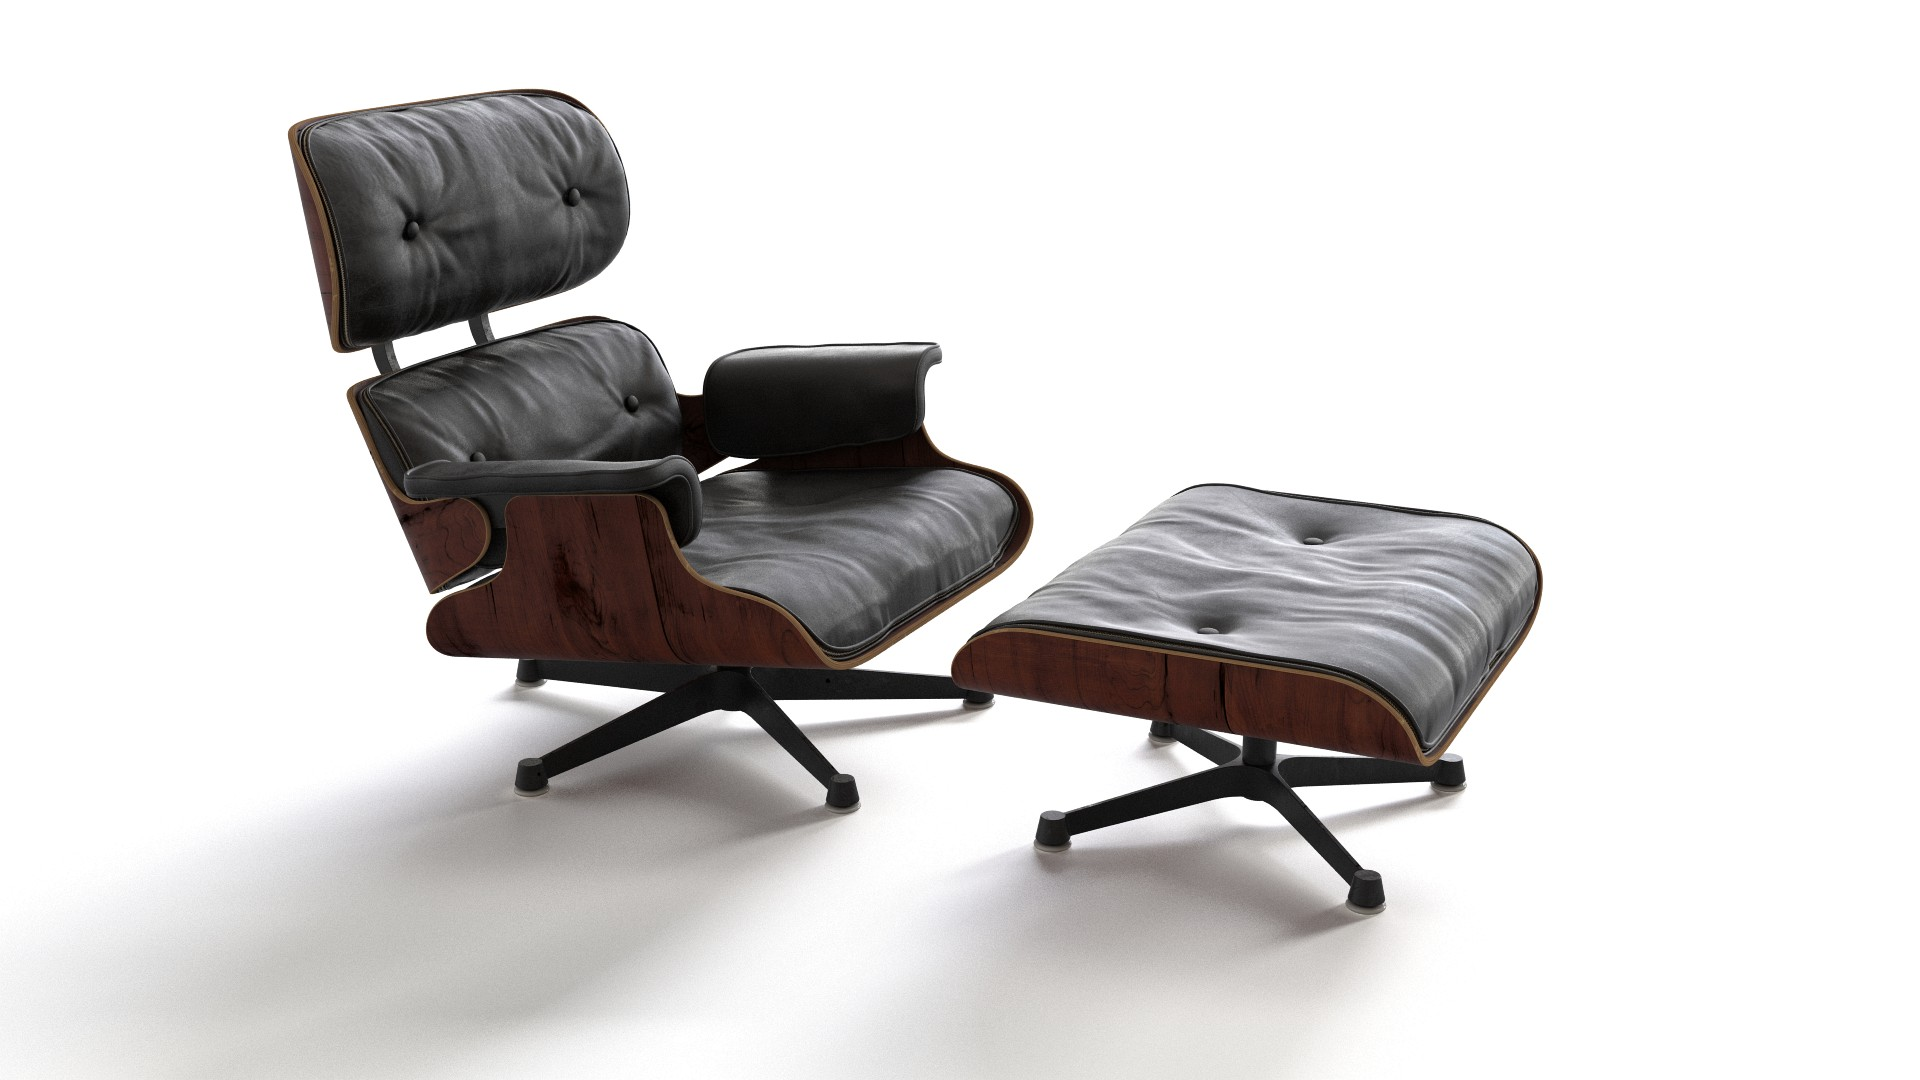 Eames Chair Wien the best of lounge chair with ottoman images struktura struktura